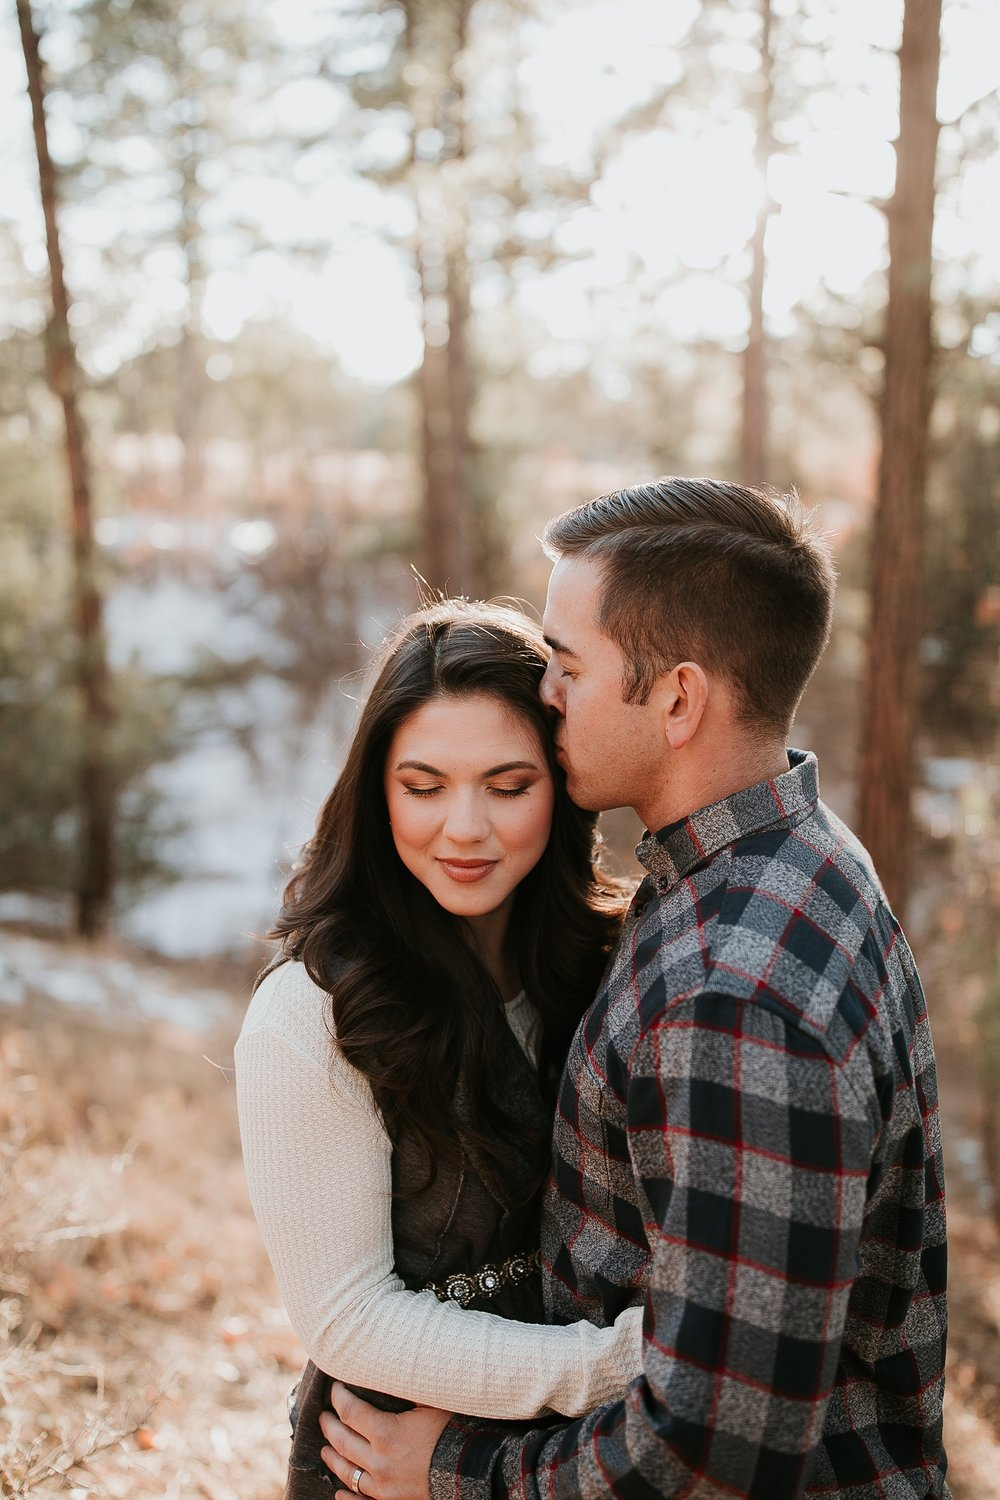 Alicia+lucia+photography+-+albuquerque+wedding+photographer+-+santa+fe+wedding+photography+-+new+mexico+wedding+photographer+-+new+mexico+engagement+-+winter+engagement+session_0007.jpg